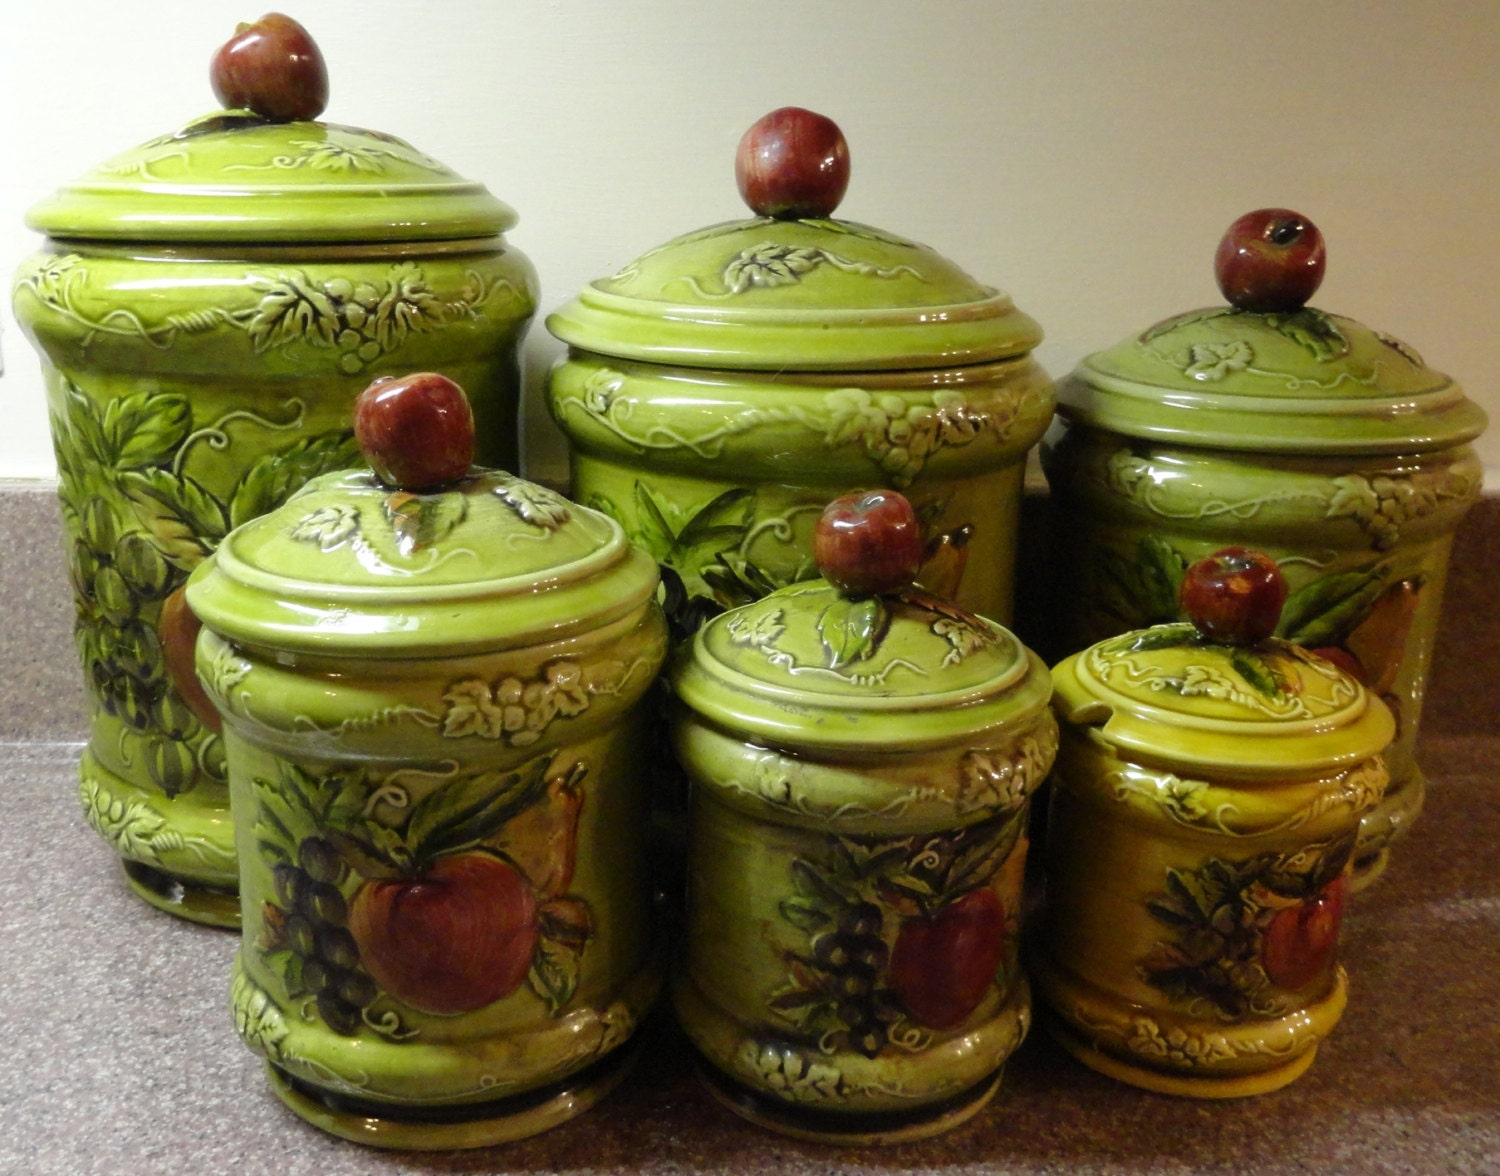 Ceramic Kitchen Canister Sets Lefton Kitchen Canister Set Ceramic Signed By Castellocasa